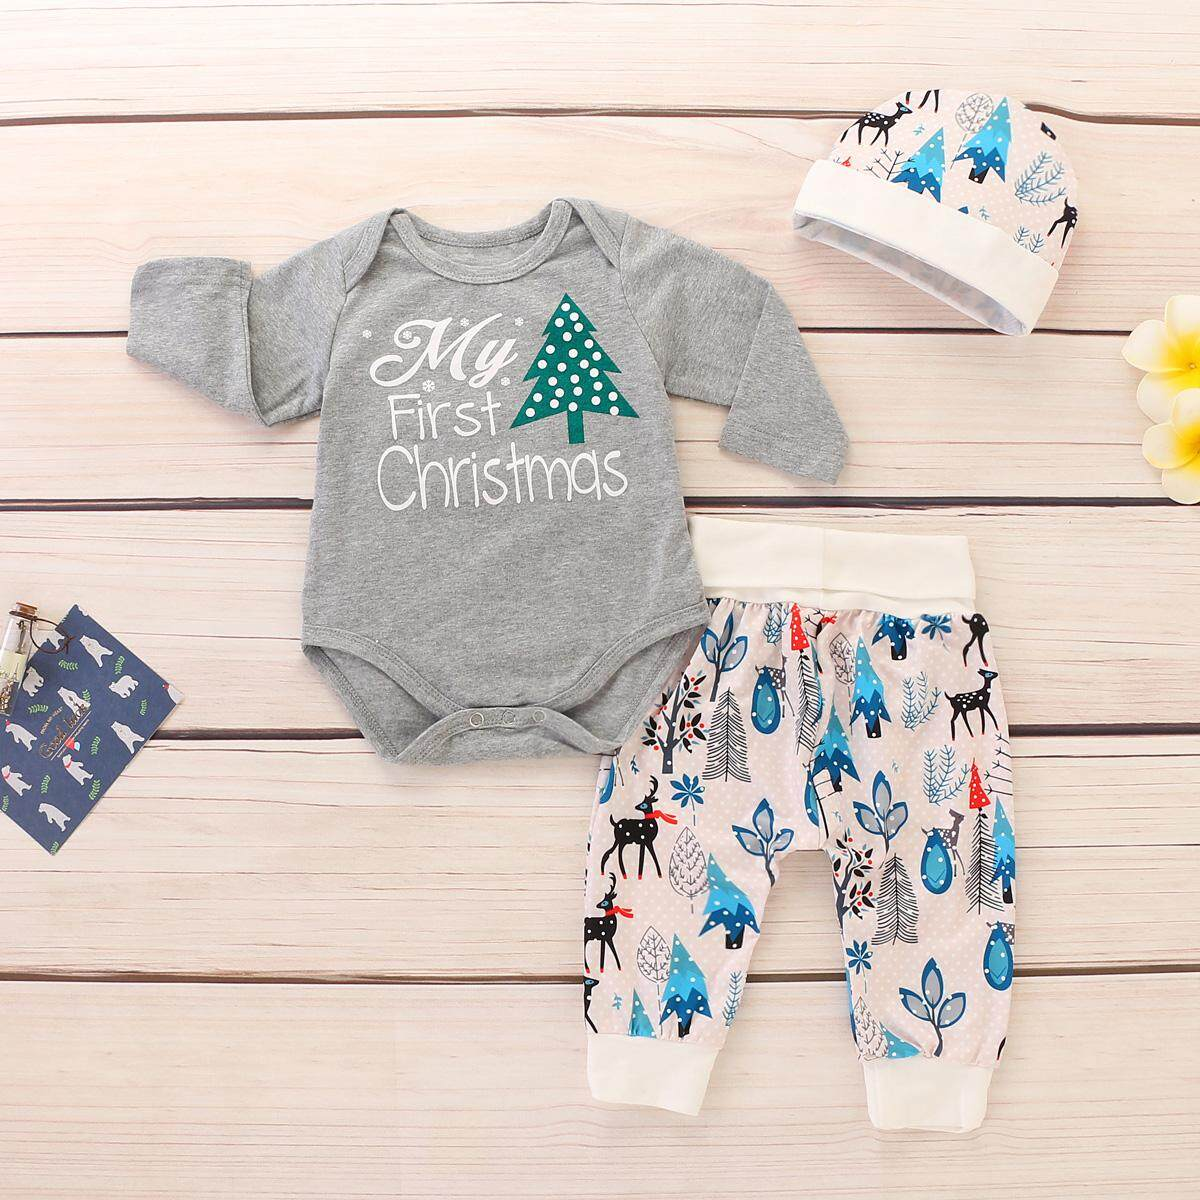 a700ed142dc 2019 New 3pcs set Infant Baby Xmas Clothes My First Christmas Print Baby  Romper+